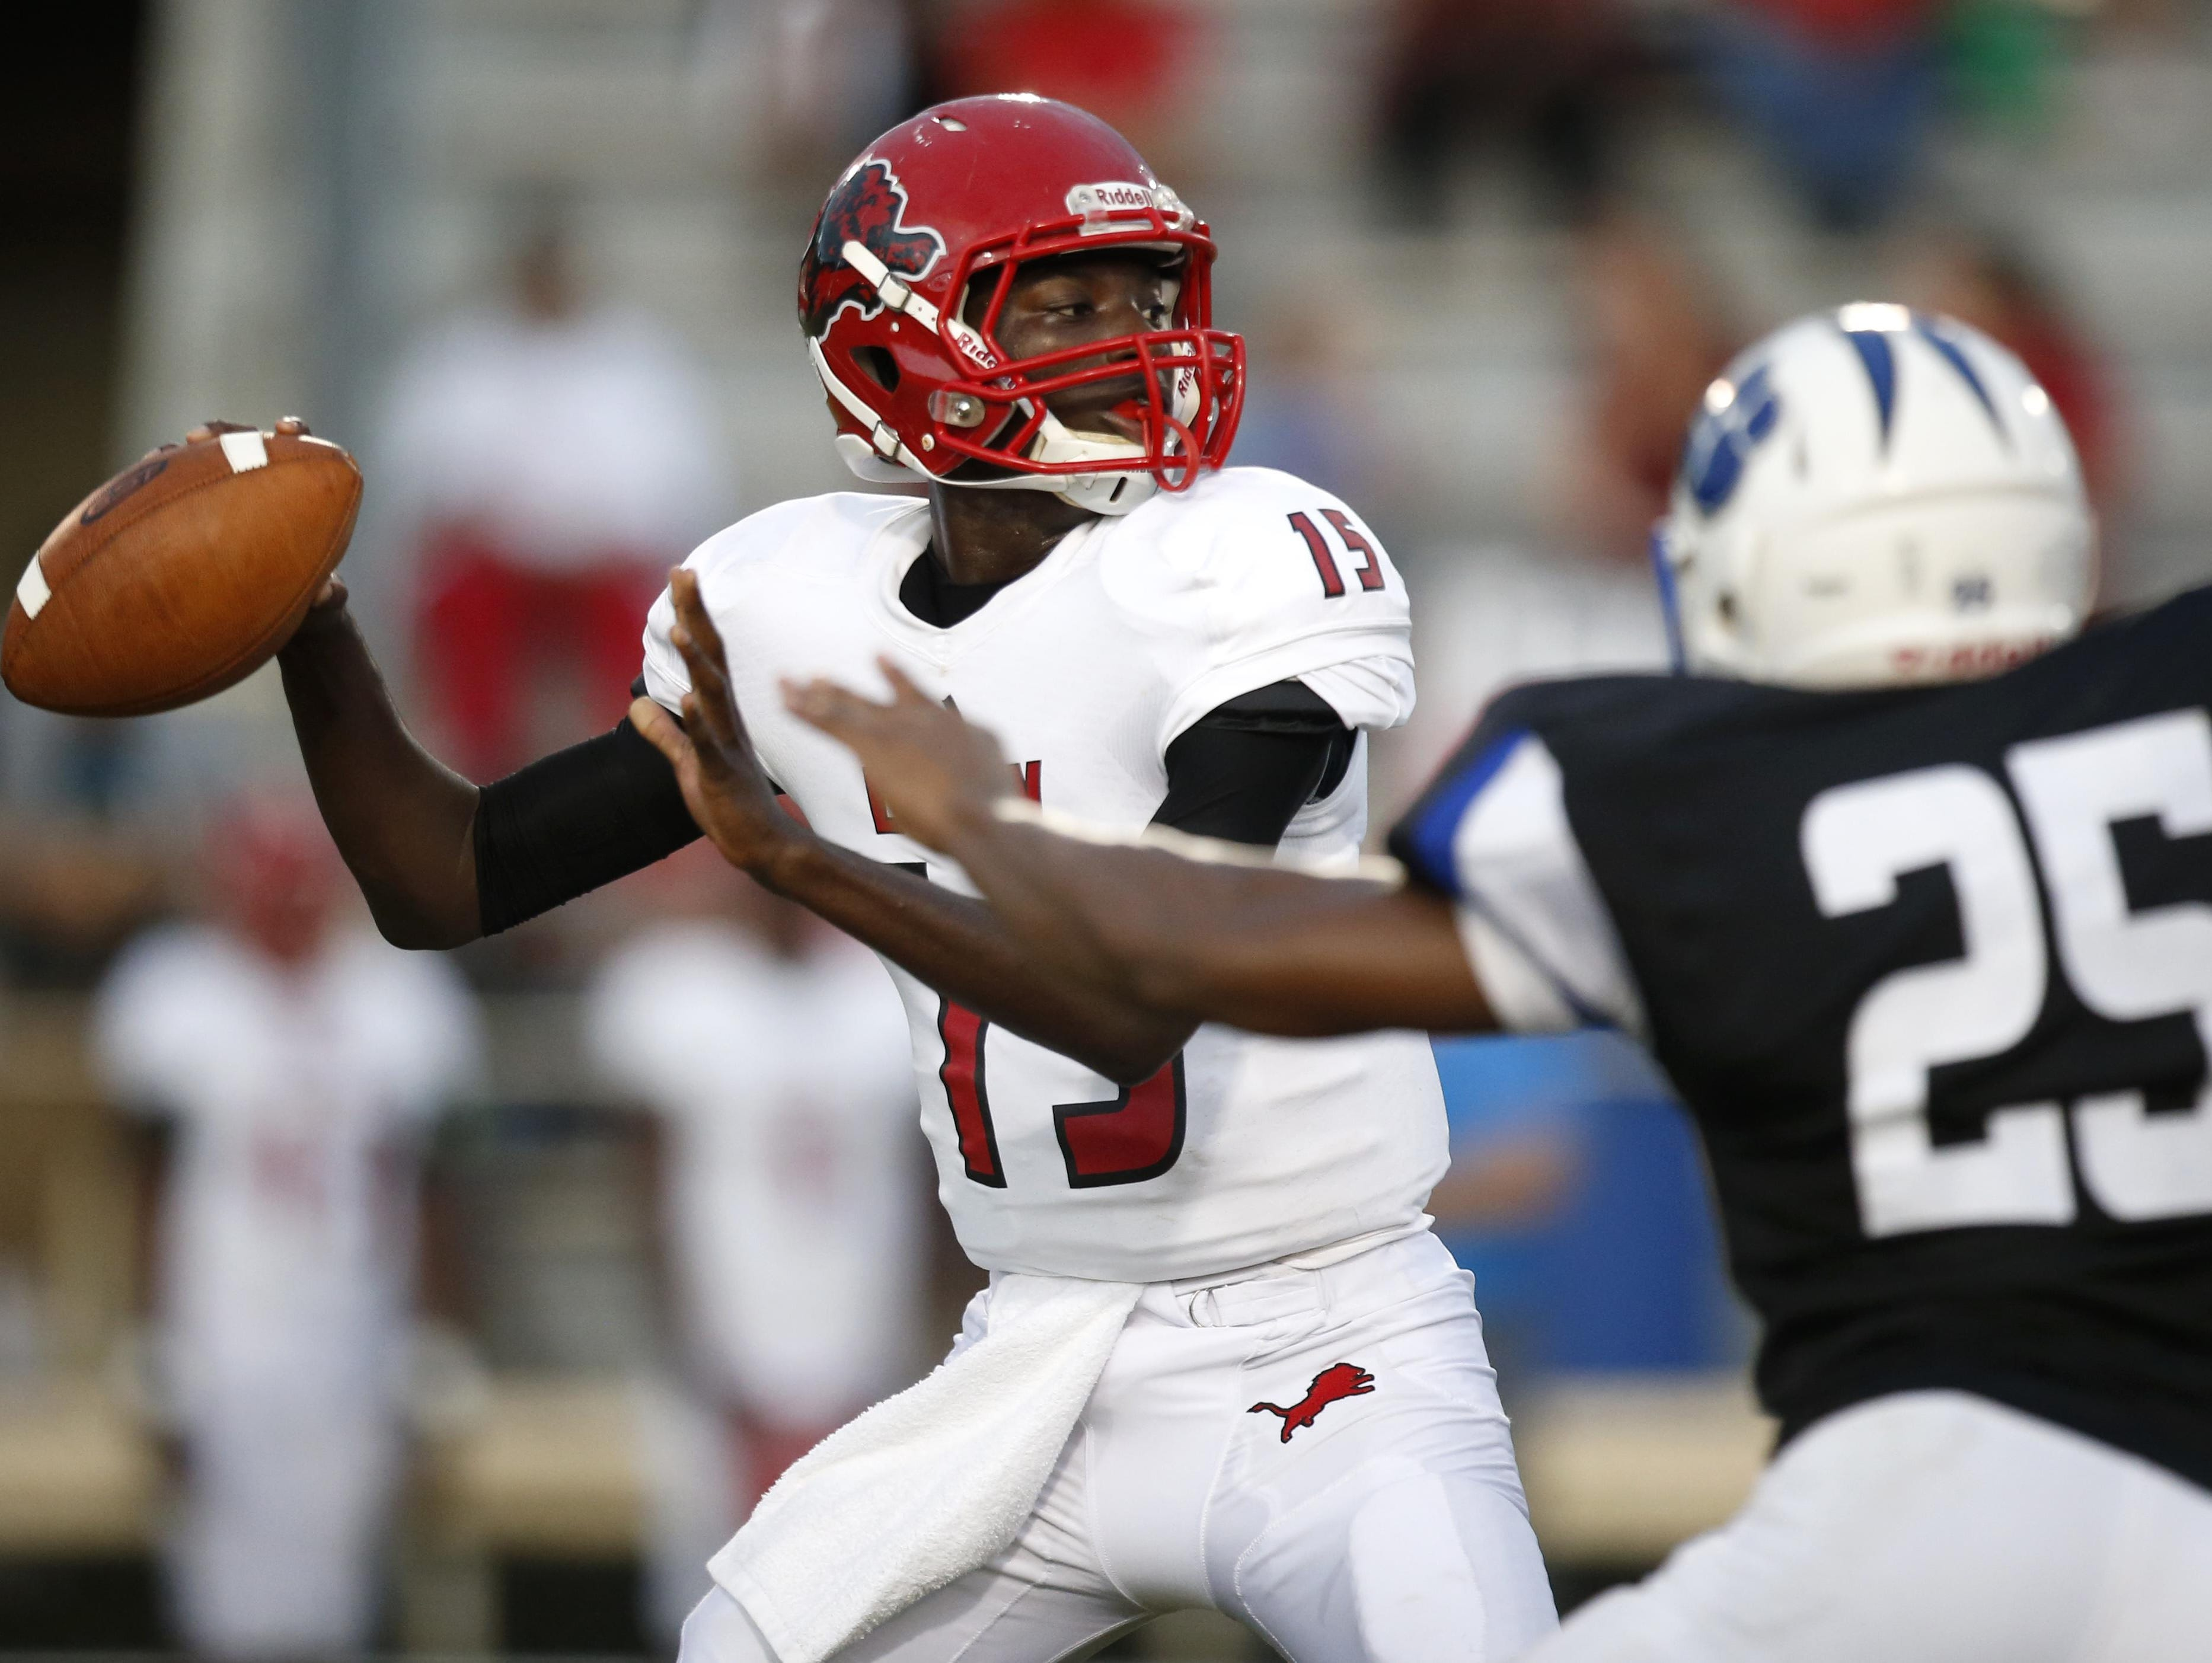 Leon quarterback Ty Glasco will be called upon heavily in Friday night's game against Lakeland Kathleen.